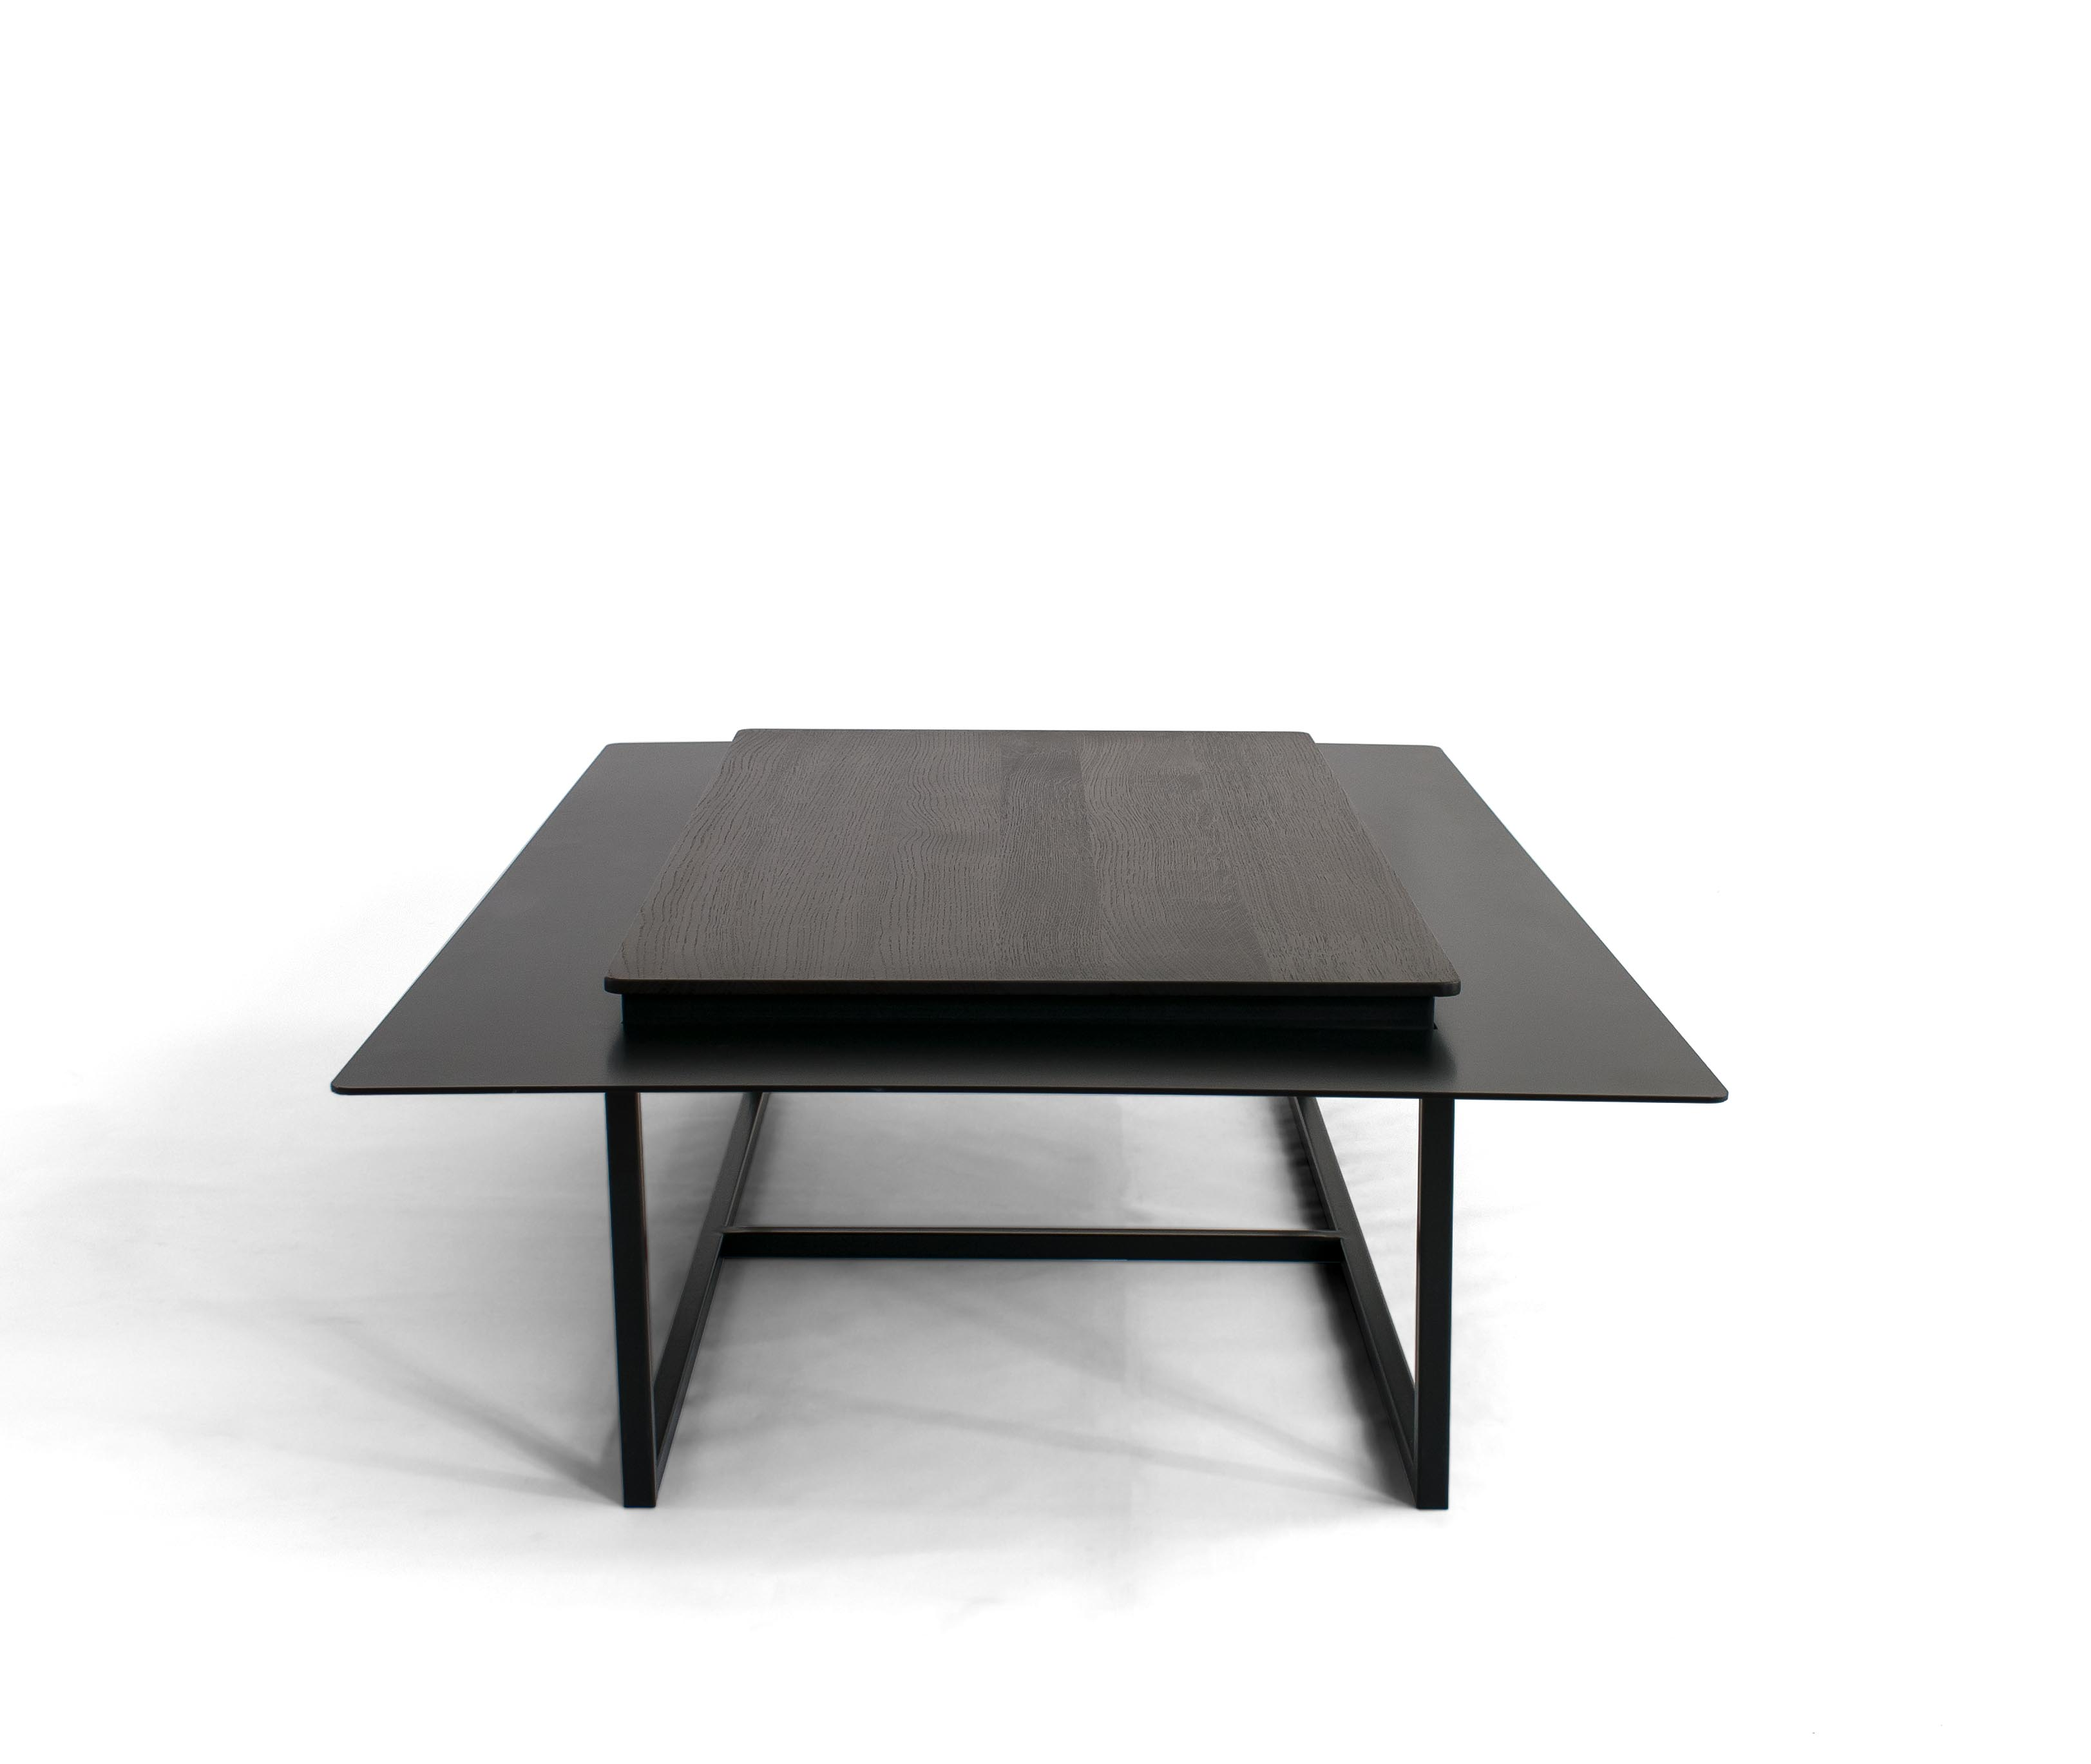 Tungen Coffee Table - The table consists of a stone top with a metal collar. This will enable the separation of everyday objects from those, that we want to expose on the slightly elevated part. The table lies on a steel frame.  The tables are made to size. The color and type of stone can be chosen according to customer preferences.  Here are the dimensions of the sample table shown in the visualization.  | Matter of Stuff